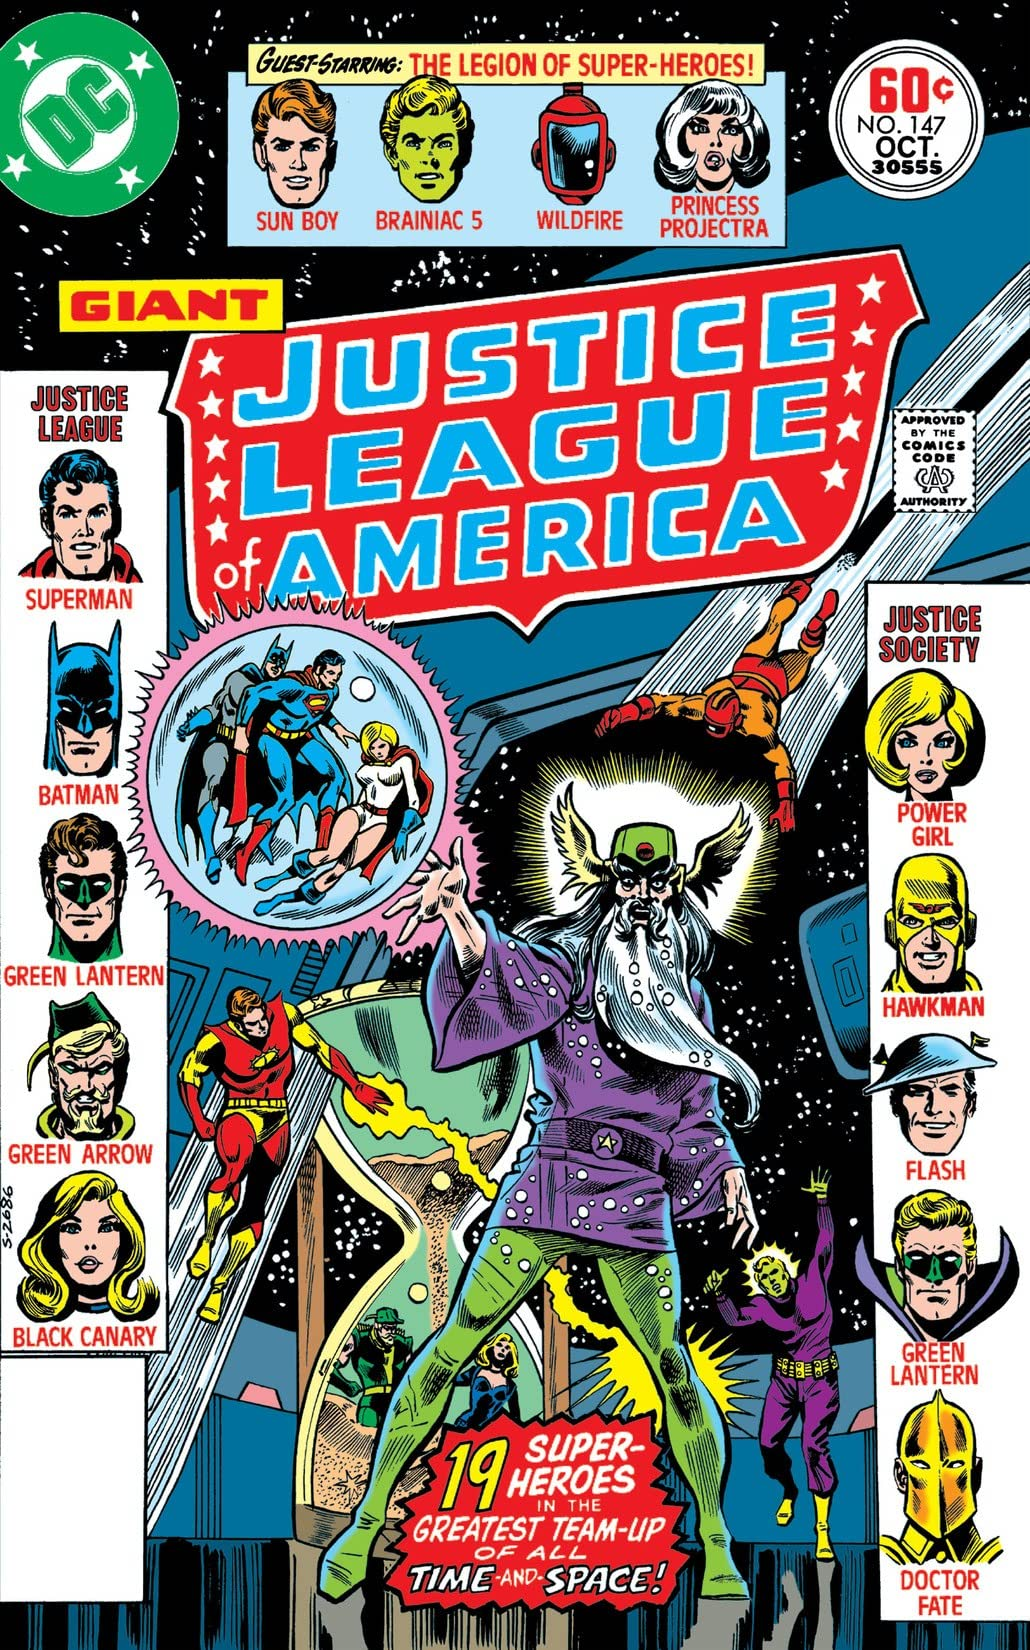 Justice League of America #147 cover by Dick Dillin and Frank McLaughlin